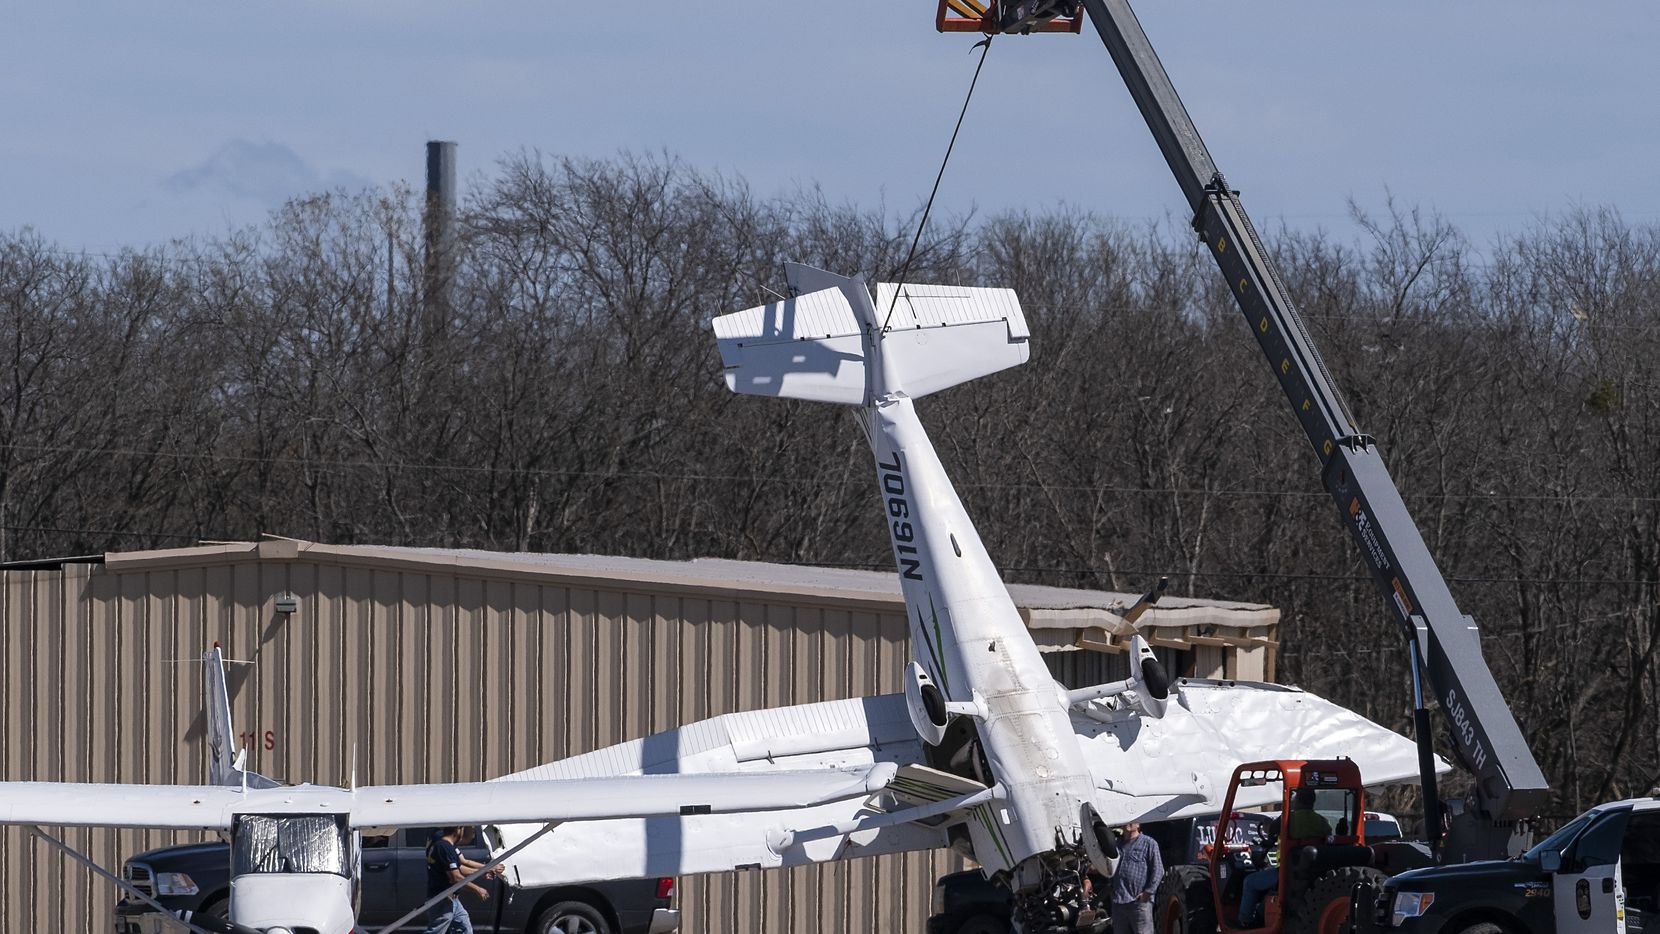 Workers used a crane to clear aircraft that storms early Wednesday damaged at Grand Prairie Municipal Airport in Grand Prairie.